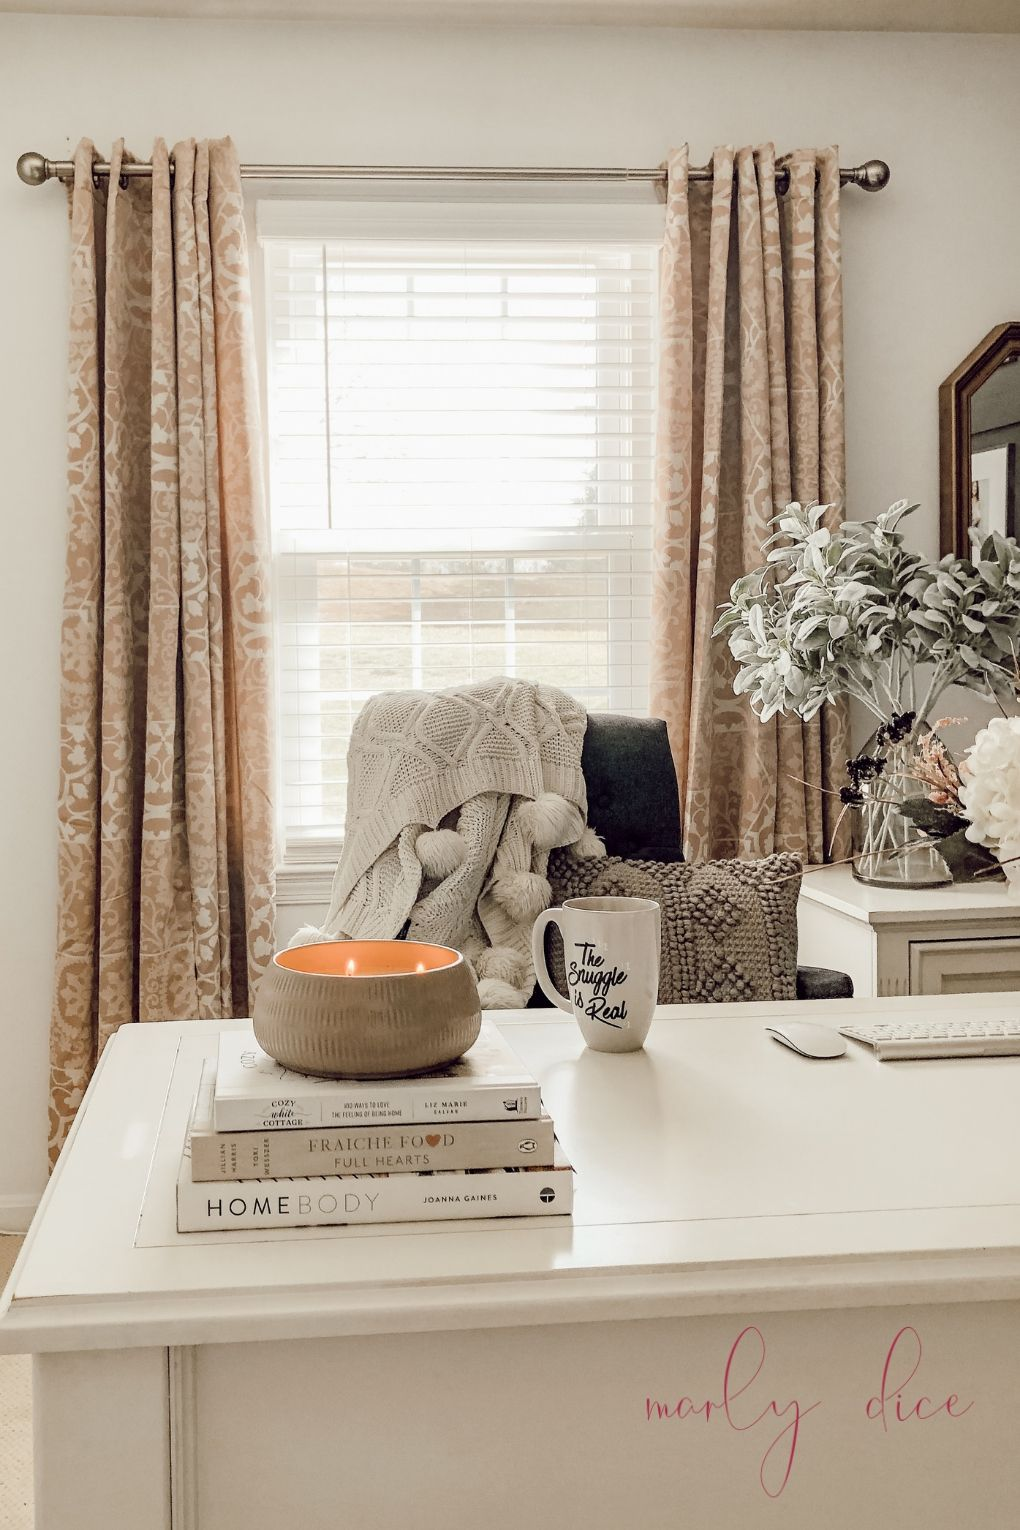 30 Functional And Creative Home Office Ideas: Home Office Ideas For Women: How To Make A Stylish And Functional Space